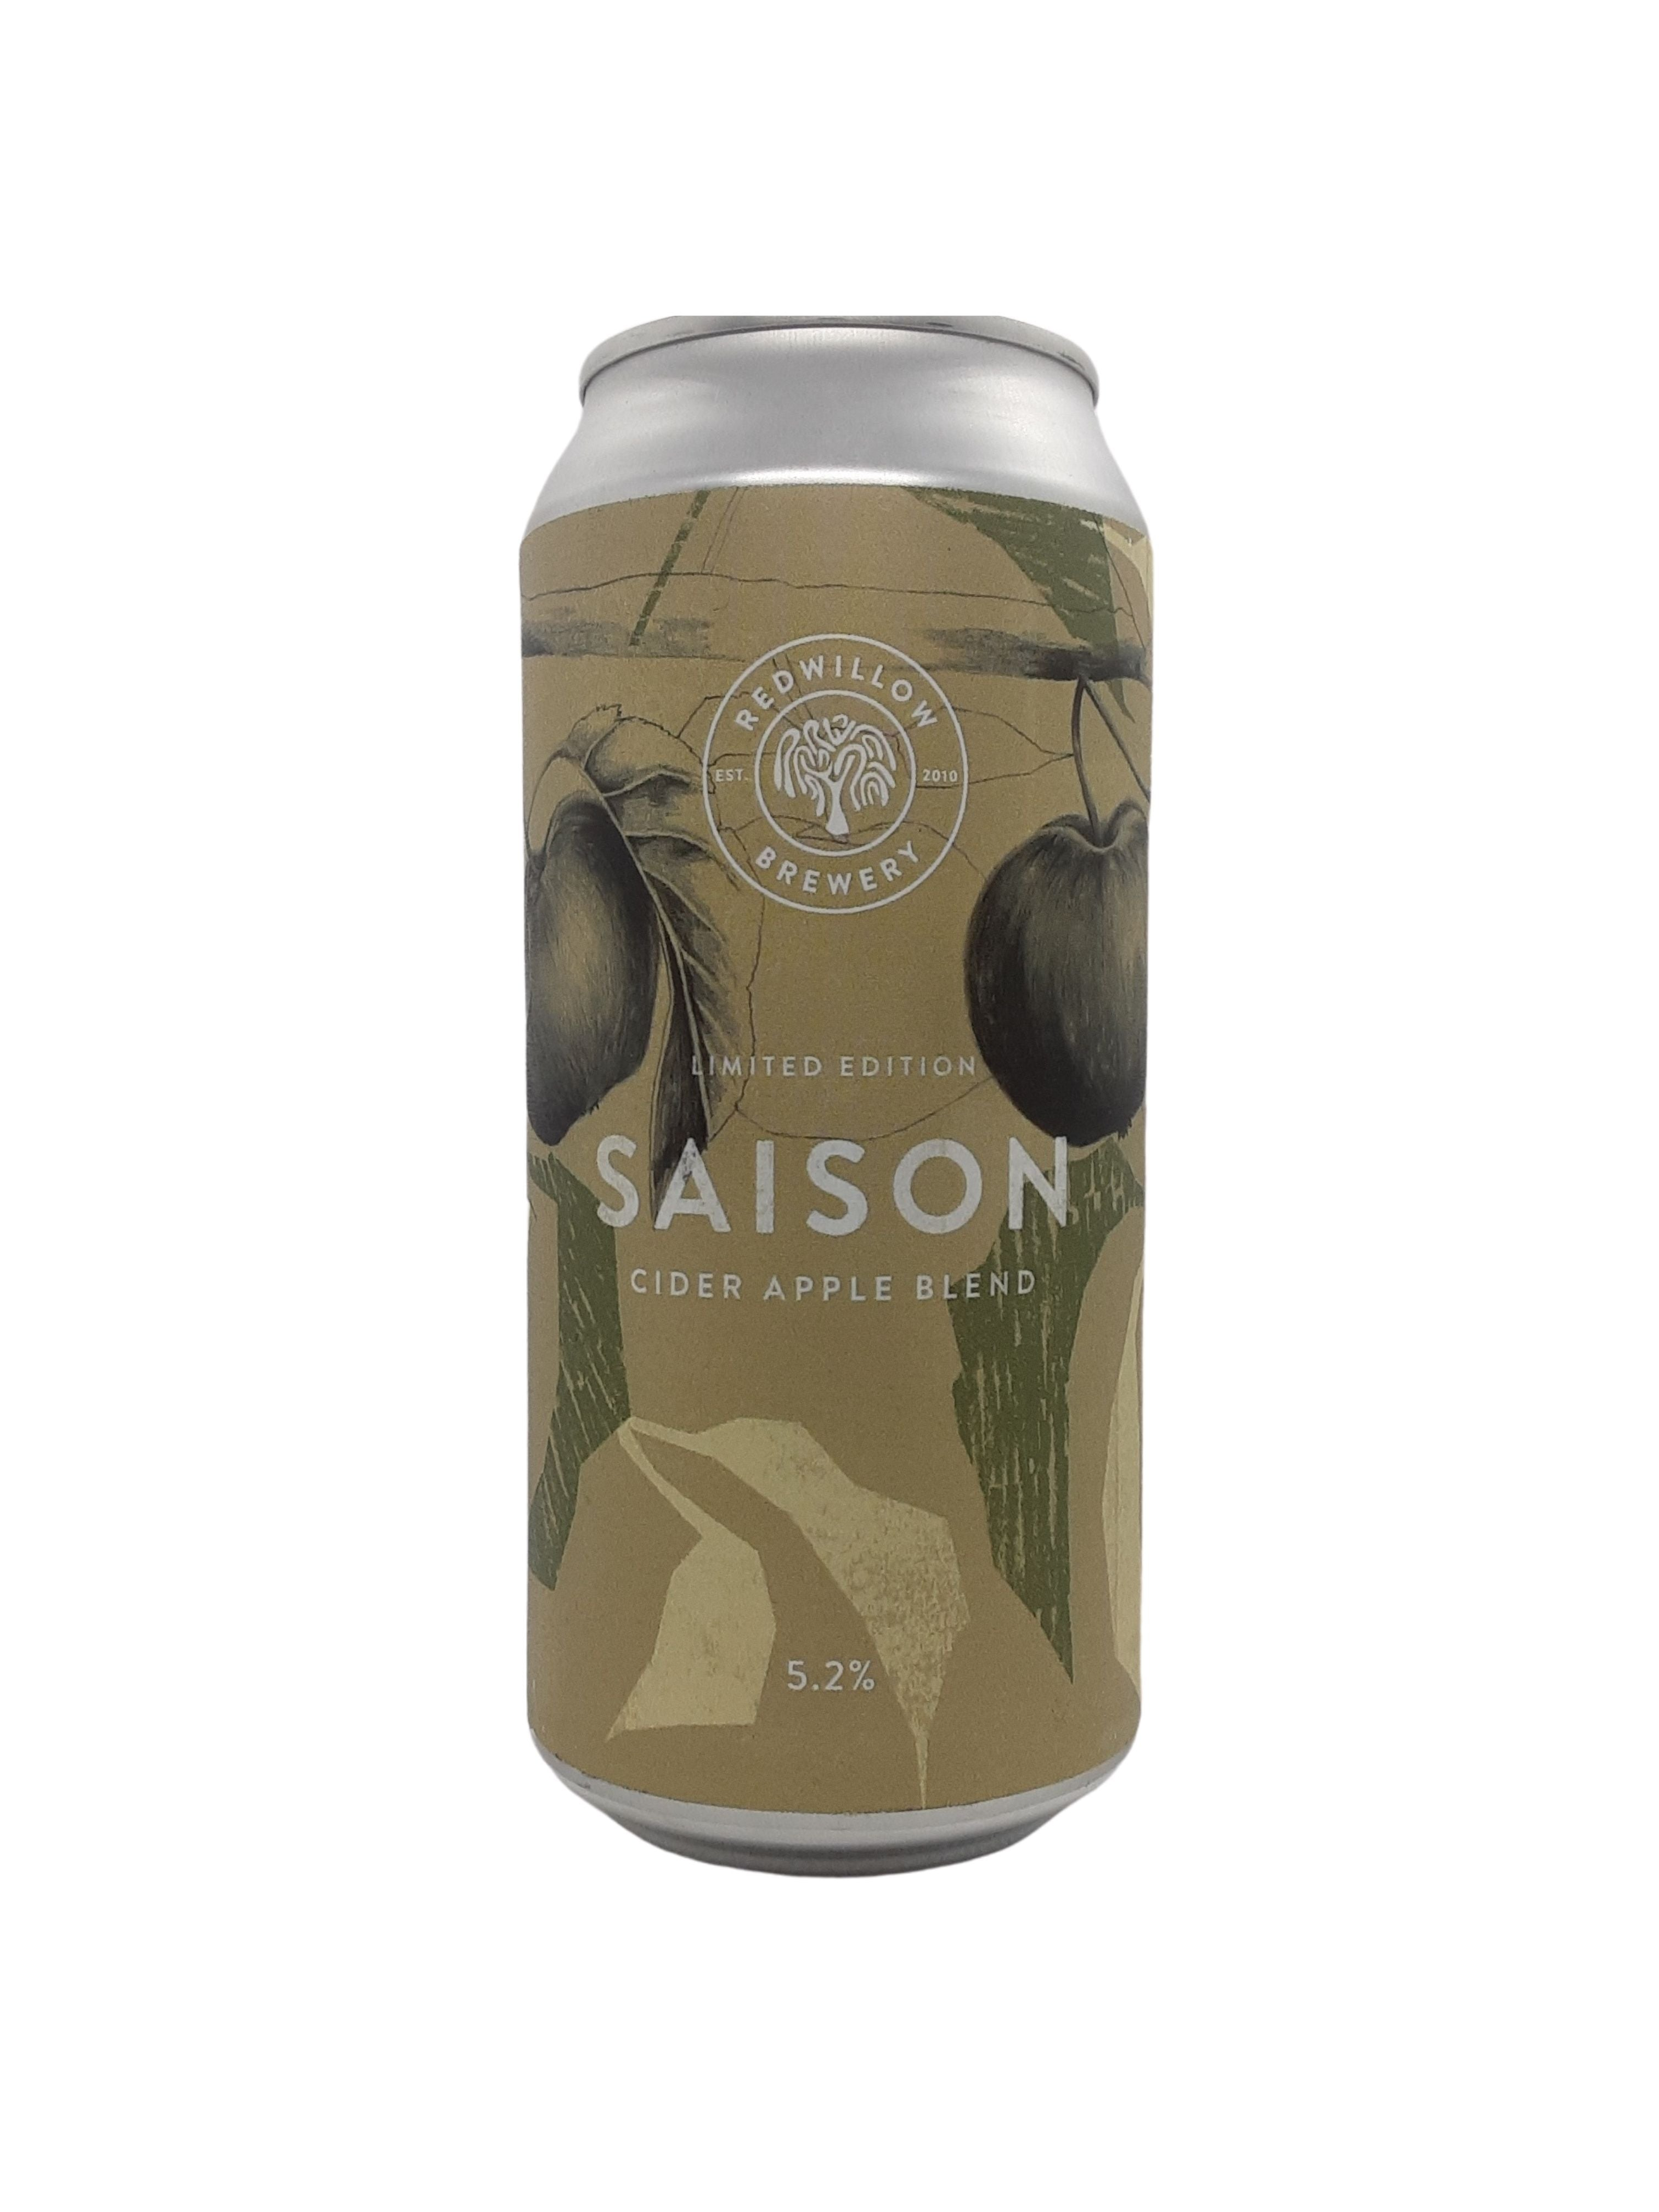 Redwillow - Saison Cider Apple Blend - Saison - 5.2% (Brand New)